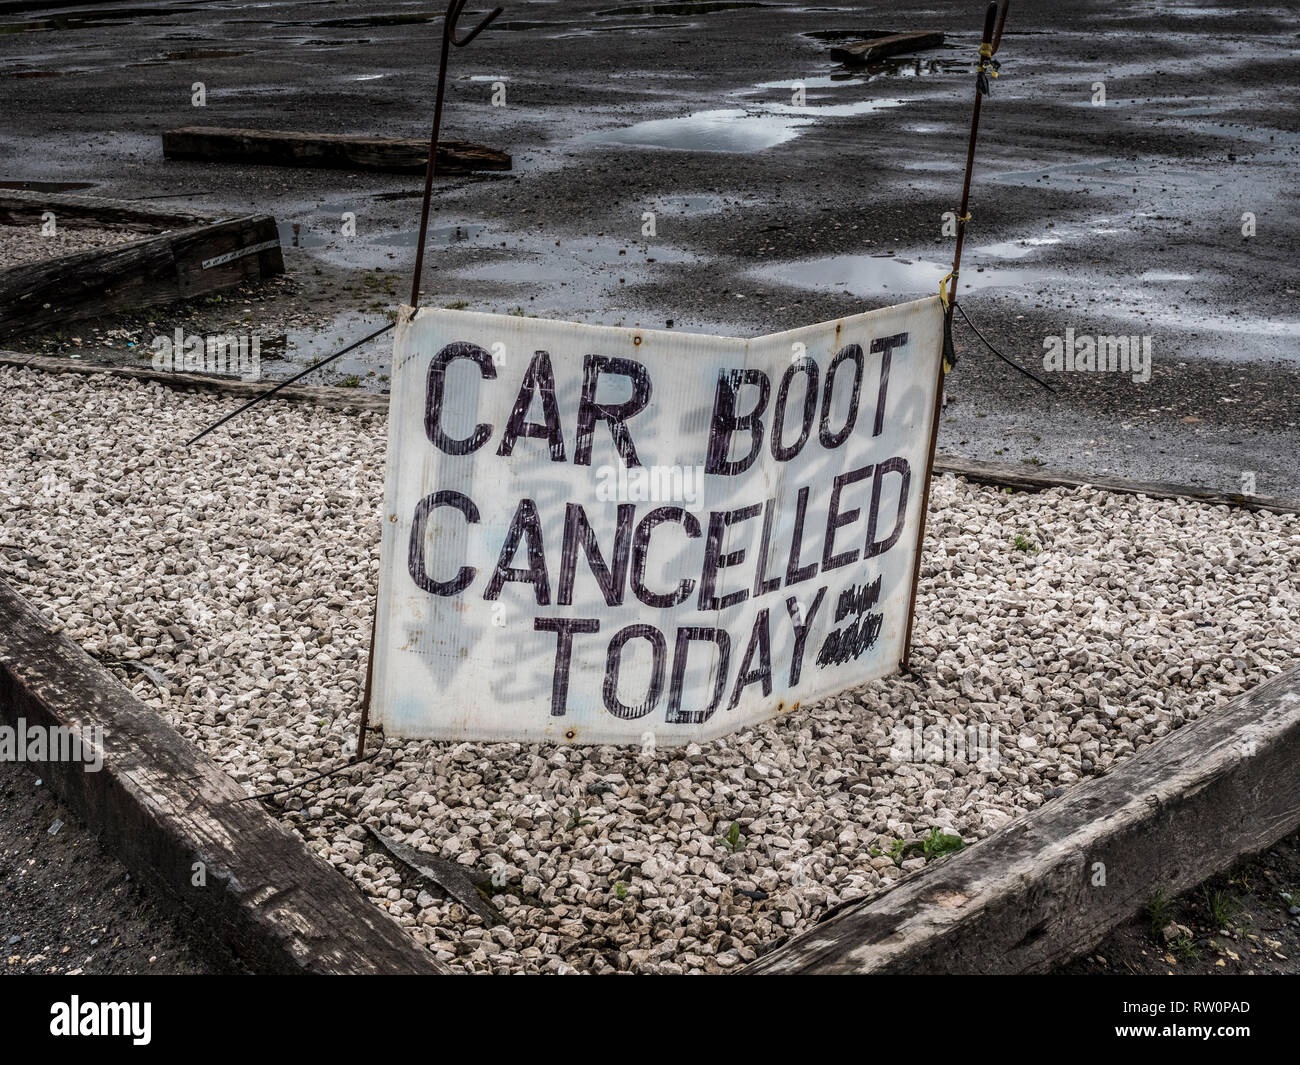 Car boot cancelled Today sign on derelict  carpark - Stock Image